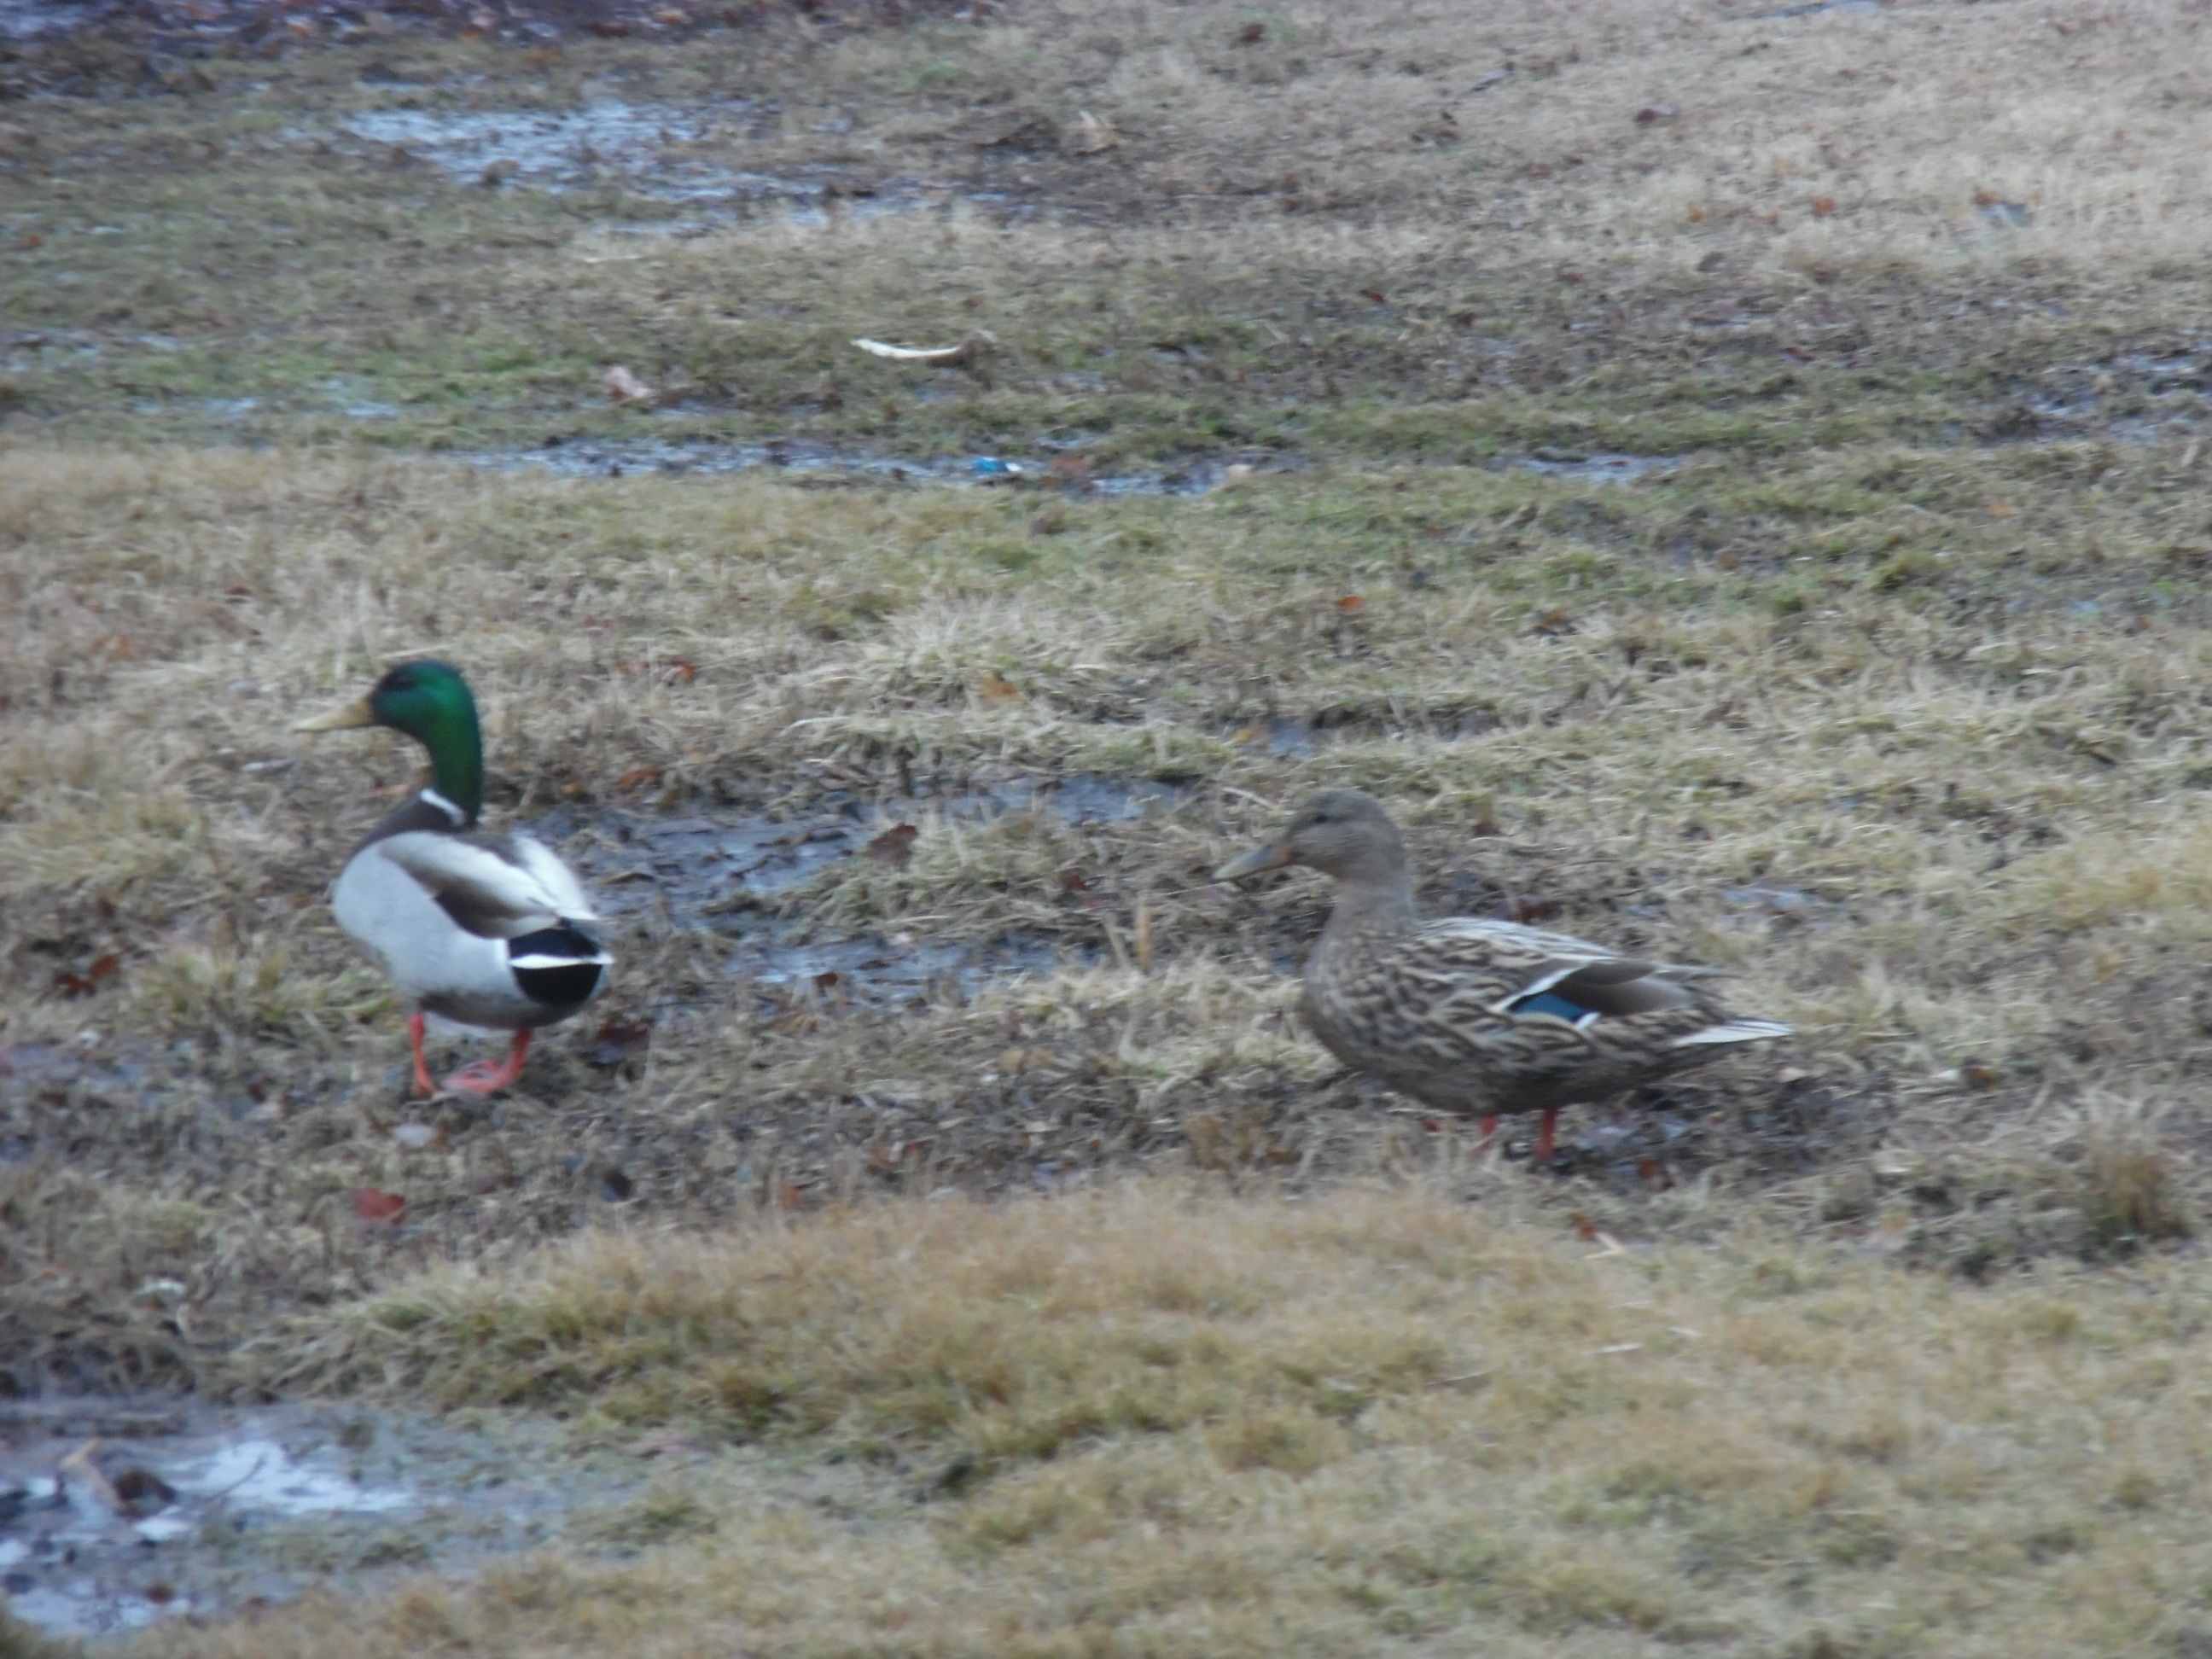 Two mallard ducks, on male and one female, on grass with puddles.